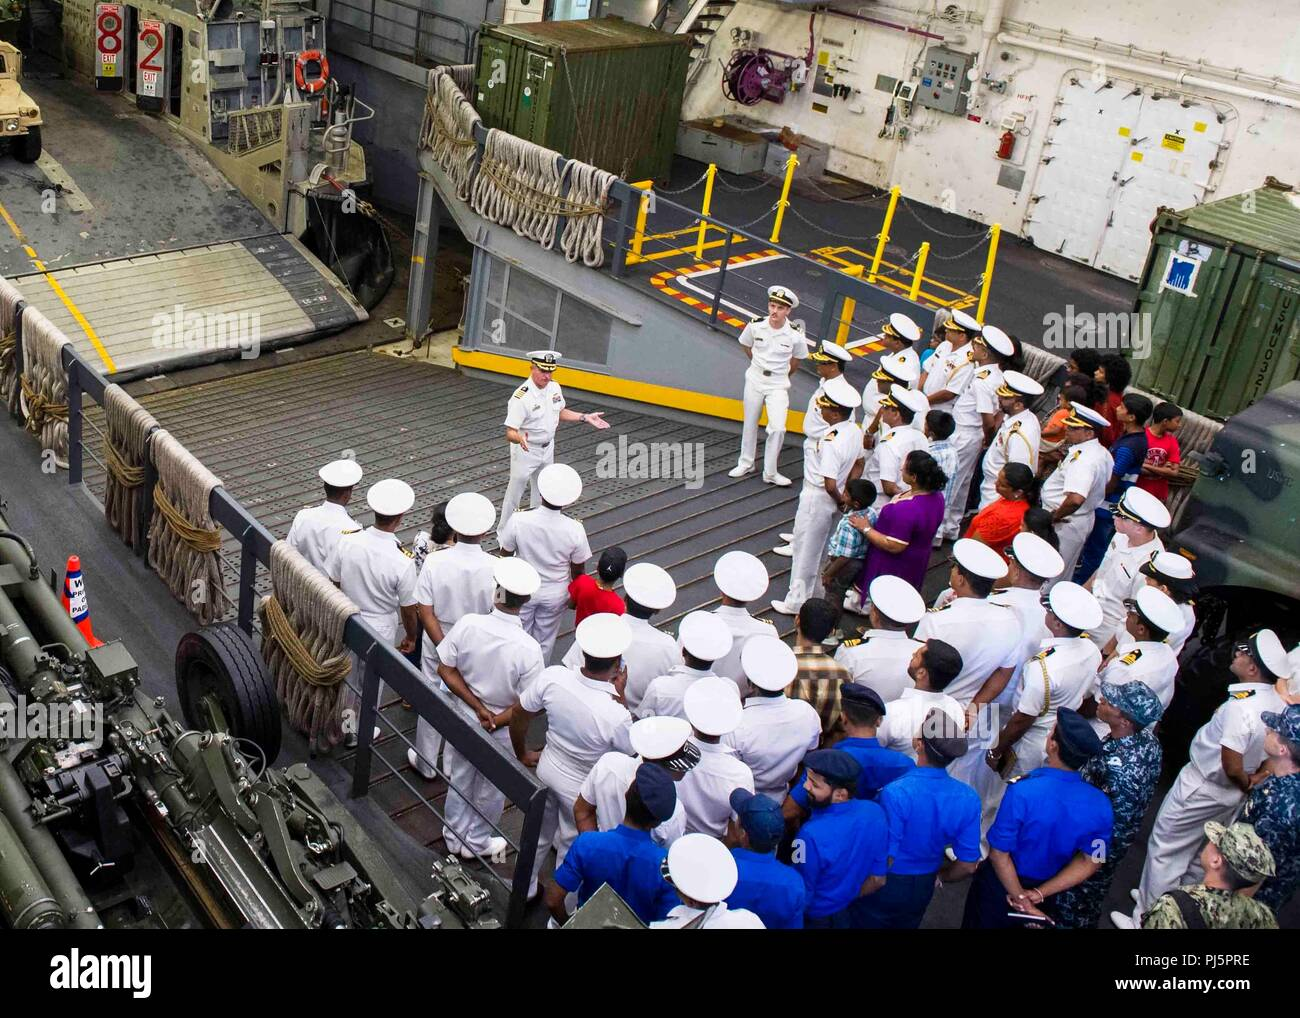 180825-N-PH222-0142 TRINCOMALEE, SRI LANKA (Aug. 25, 2018) Capt. Dennis Jacko, commanding officer of San Antonio-class amphibious transport dock USS Anchorage (LPD 23), from Sayreville, N.J., gives a tour of the well deck to distinguished visitors of the Sri Lanka navy and their families during a regularly scheduled deployment of the Essex Amphibious Ready Group (ARG) and 13th Marine Expeditionary Unit (MEU). Anchorage and the embarked Marines of the 13th MEU are conducting a theater security cooperation exercise with the Sri Lankan navy and marines. Part of a growing U.S.-Sri Lanka naval part - Stock Image